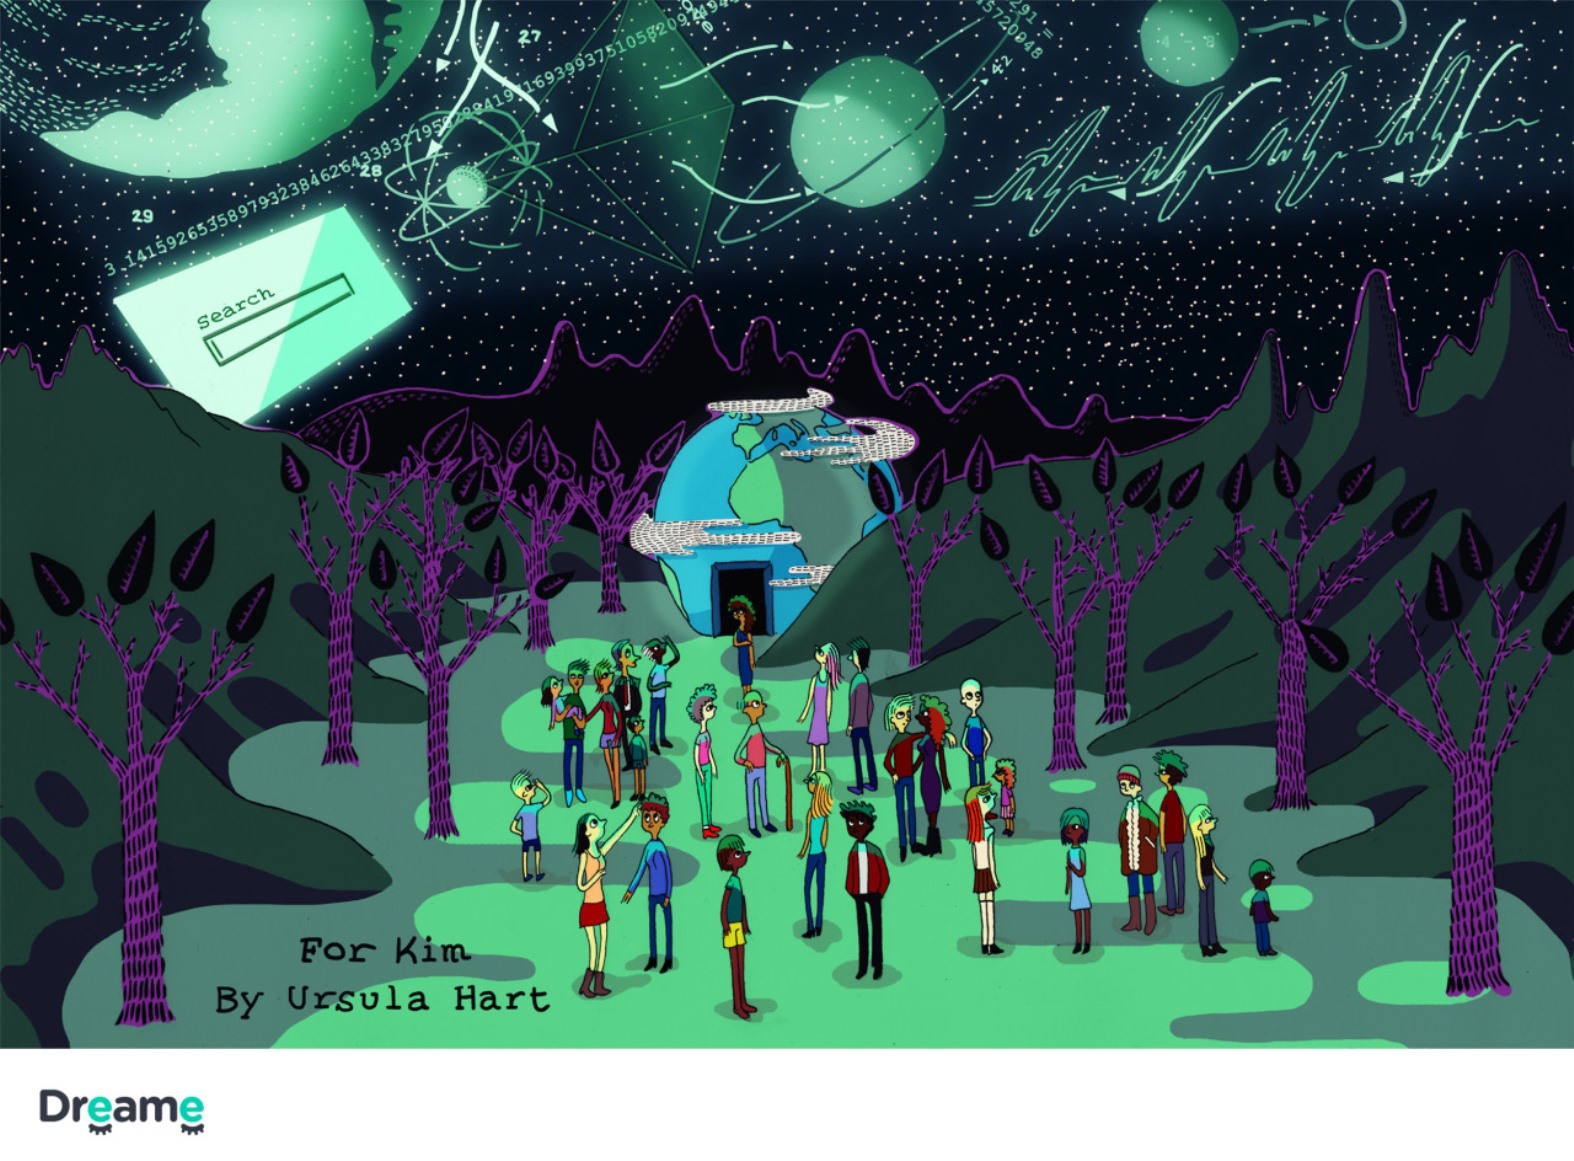 """A Dreame client in San Francisco asked Ursula Hart to illustrate this story: """"Characters were me and the rest of the humans on this planet. We were located in the valley somewhere. We were walking around at night, and then all of a sudden Google projected the stars in the sky, their names, their meaning, and other space calculations in the sky so that the planet could better understand math, science, and space. It was after dark, and the sky was glowing with information. We were feeling smart and in awe that something could project that far into the sky."""" Photo courtesy of Dreame"""